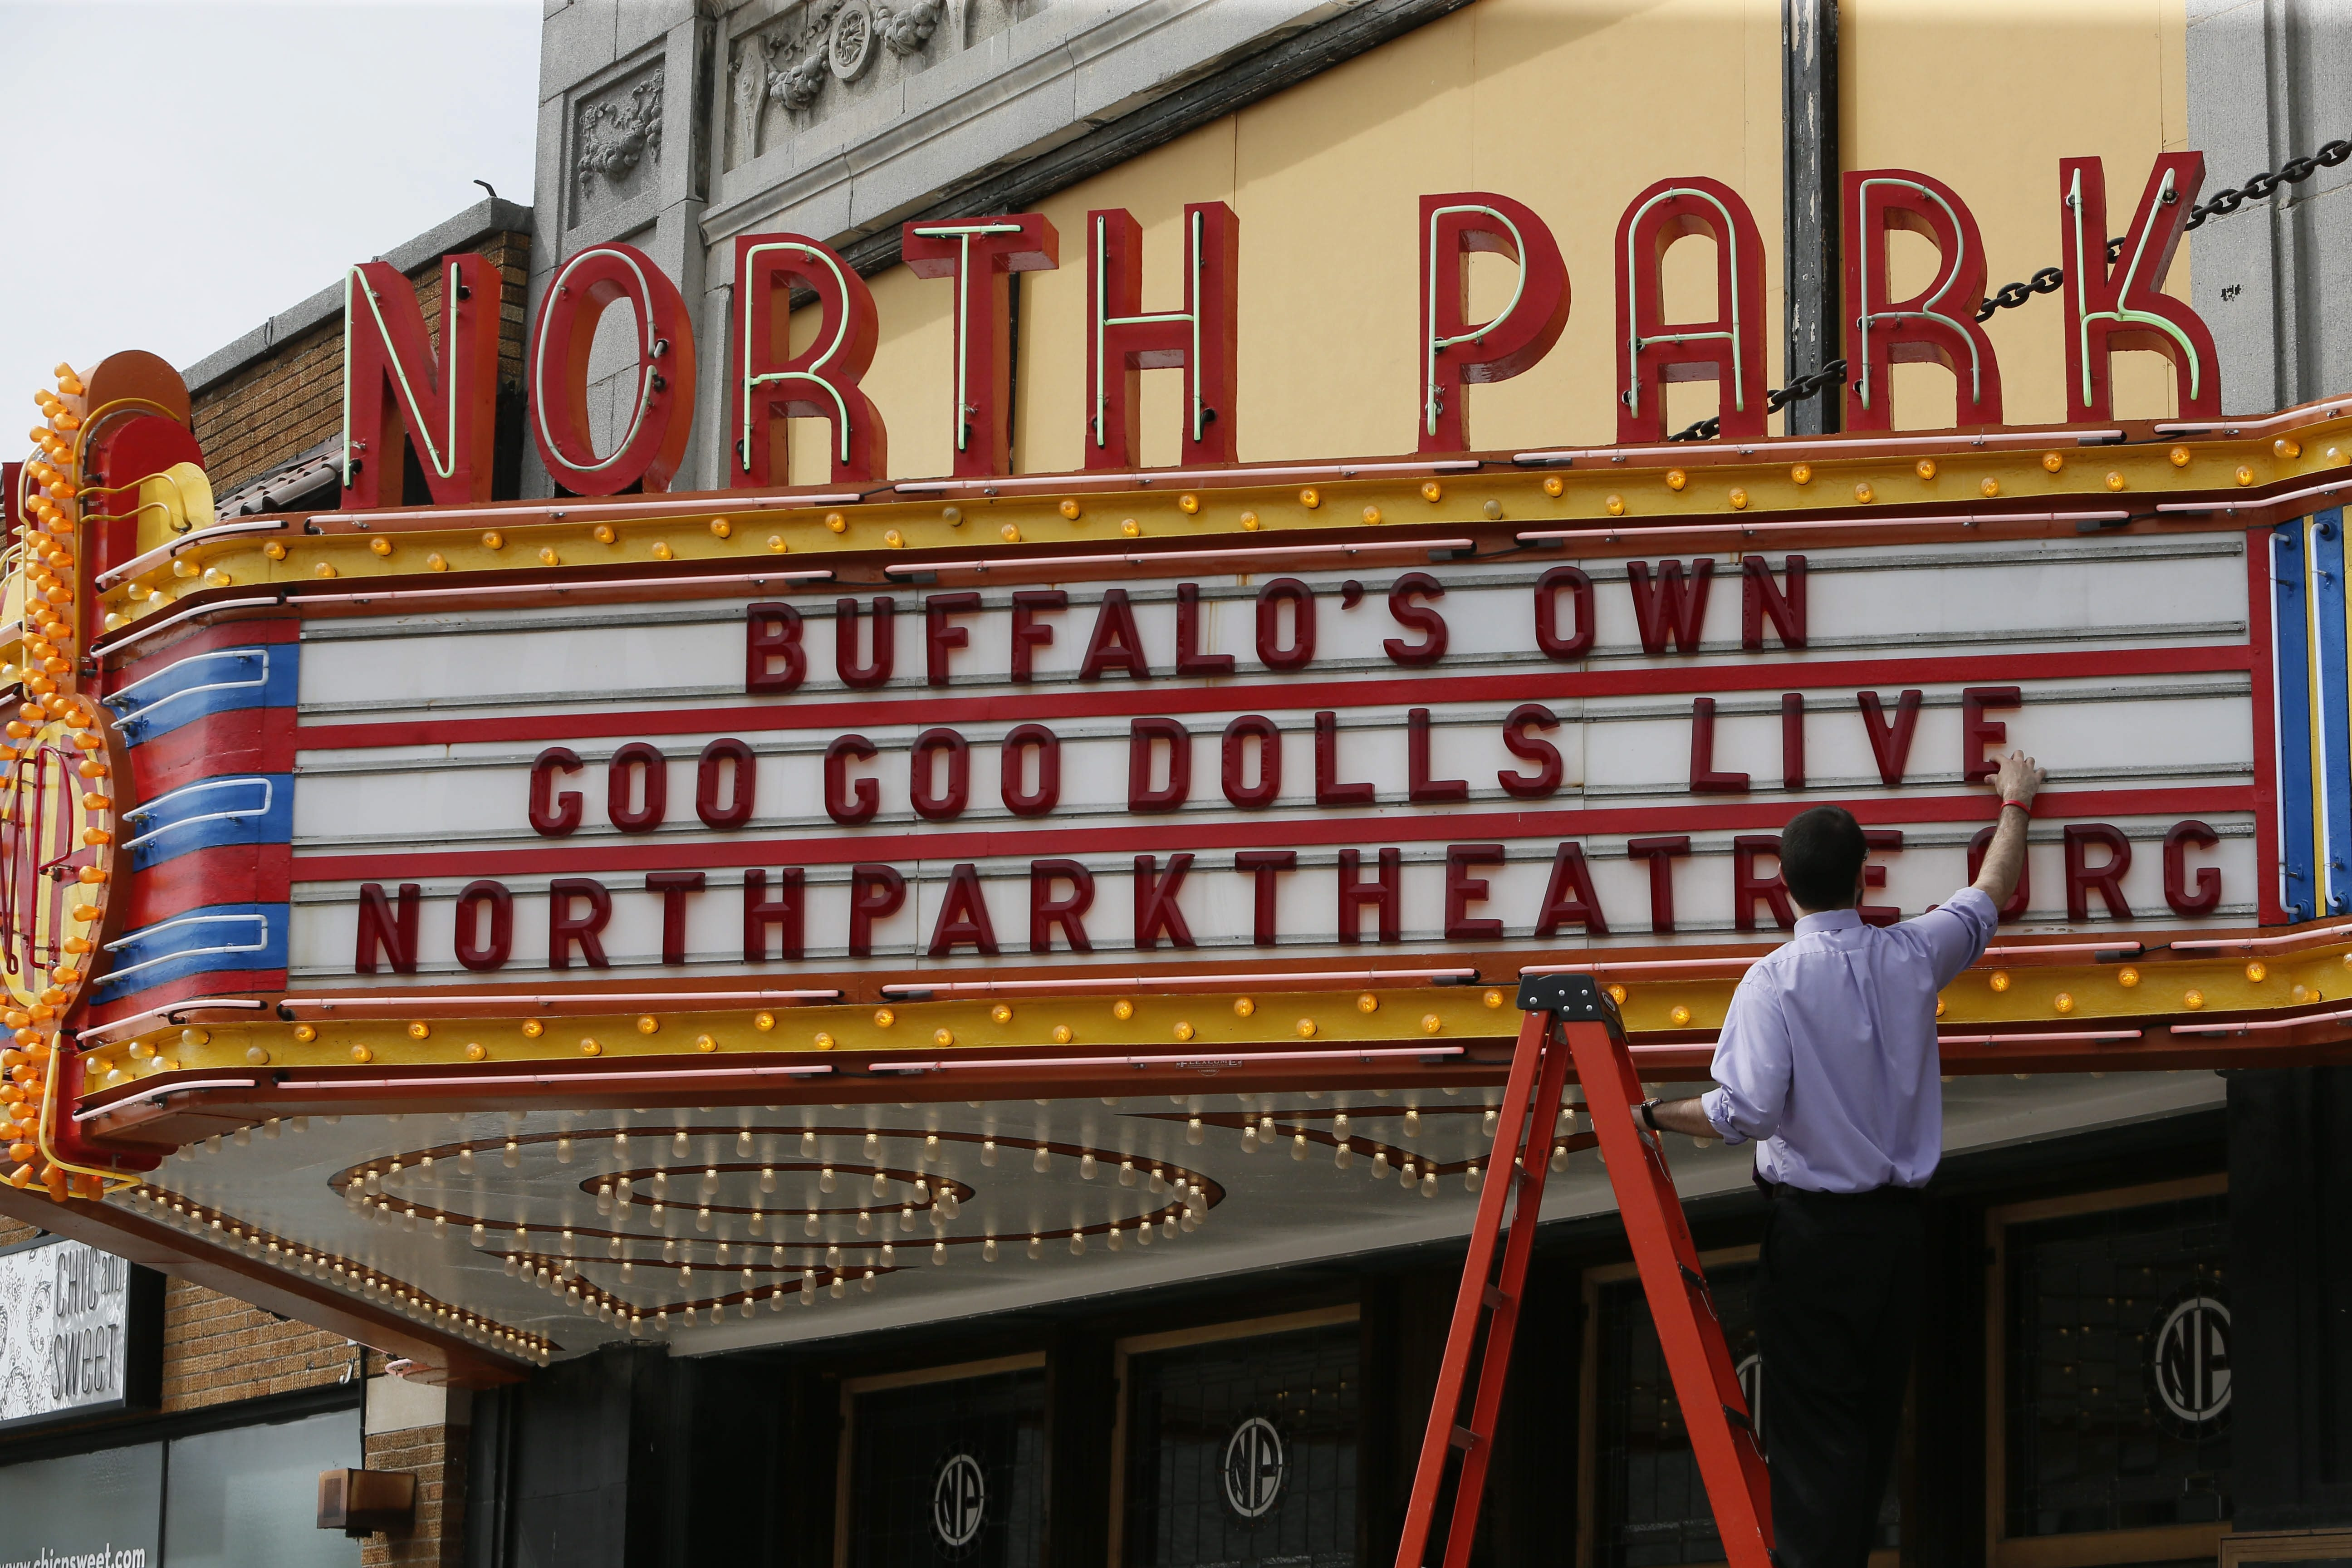 Assistant Manager Vinny Lauricella puts up letters on the marquee at North Park Theatre on Monday, April 28, 2014, where the Goo Goo Dolls are performing a concert to benefit the theater tomorrow night. (Derek Gee/Buffalo News)